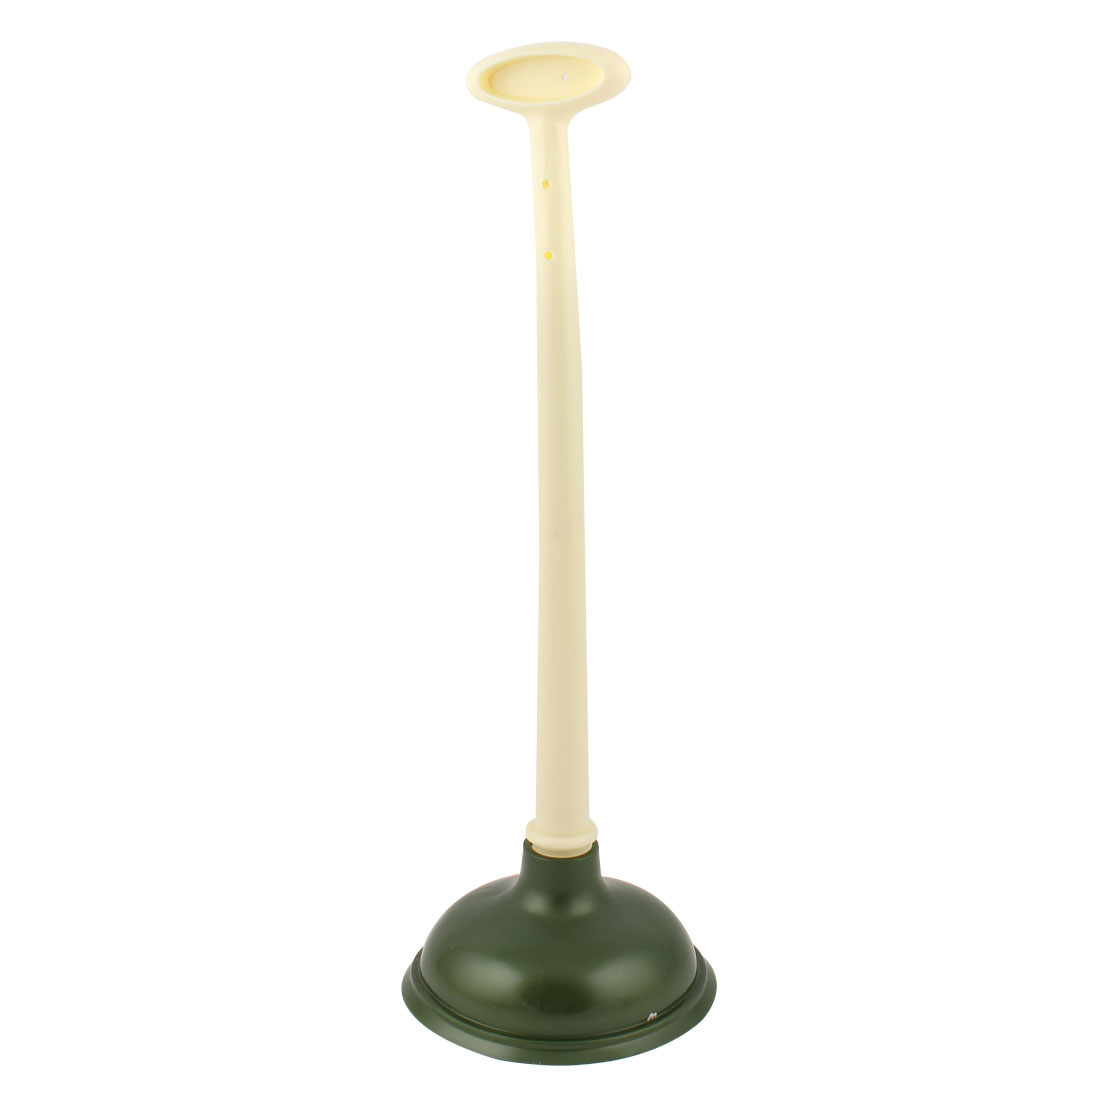 Bathroom Sink Rubber Suction Cup Power Drain Cleaning Pump Toilet Plunger Army Green